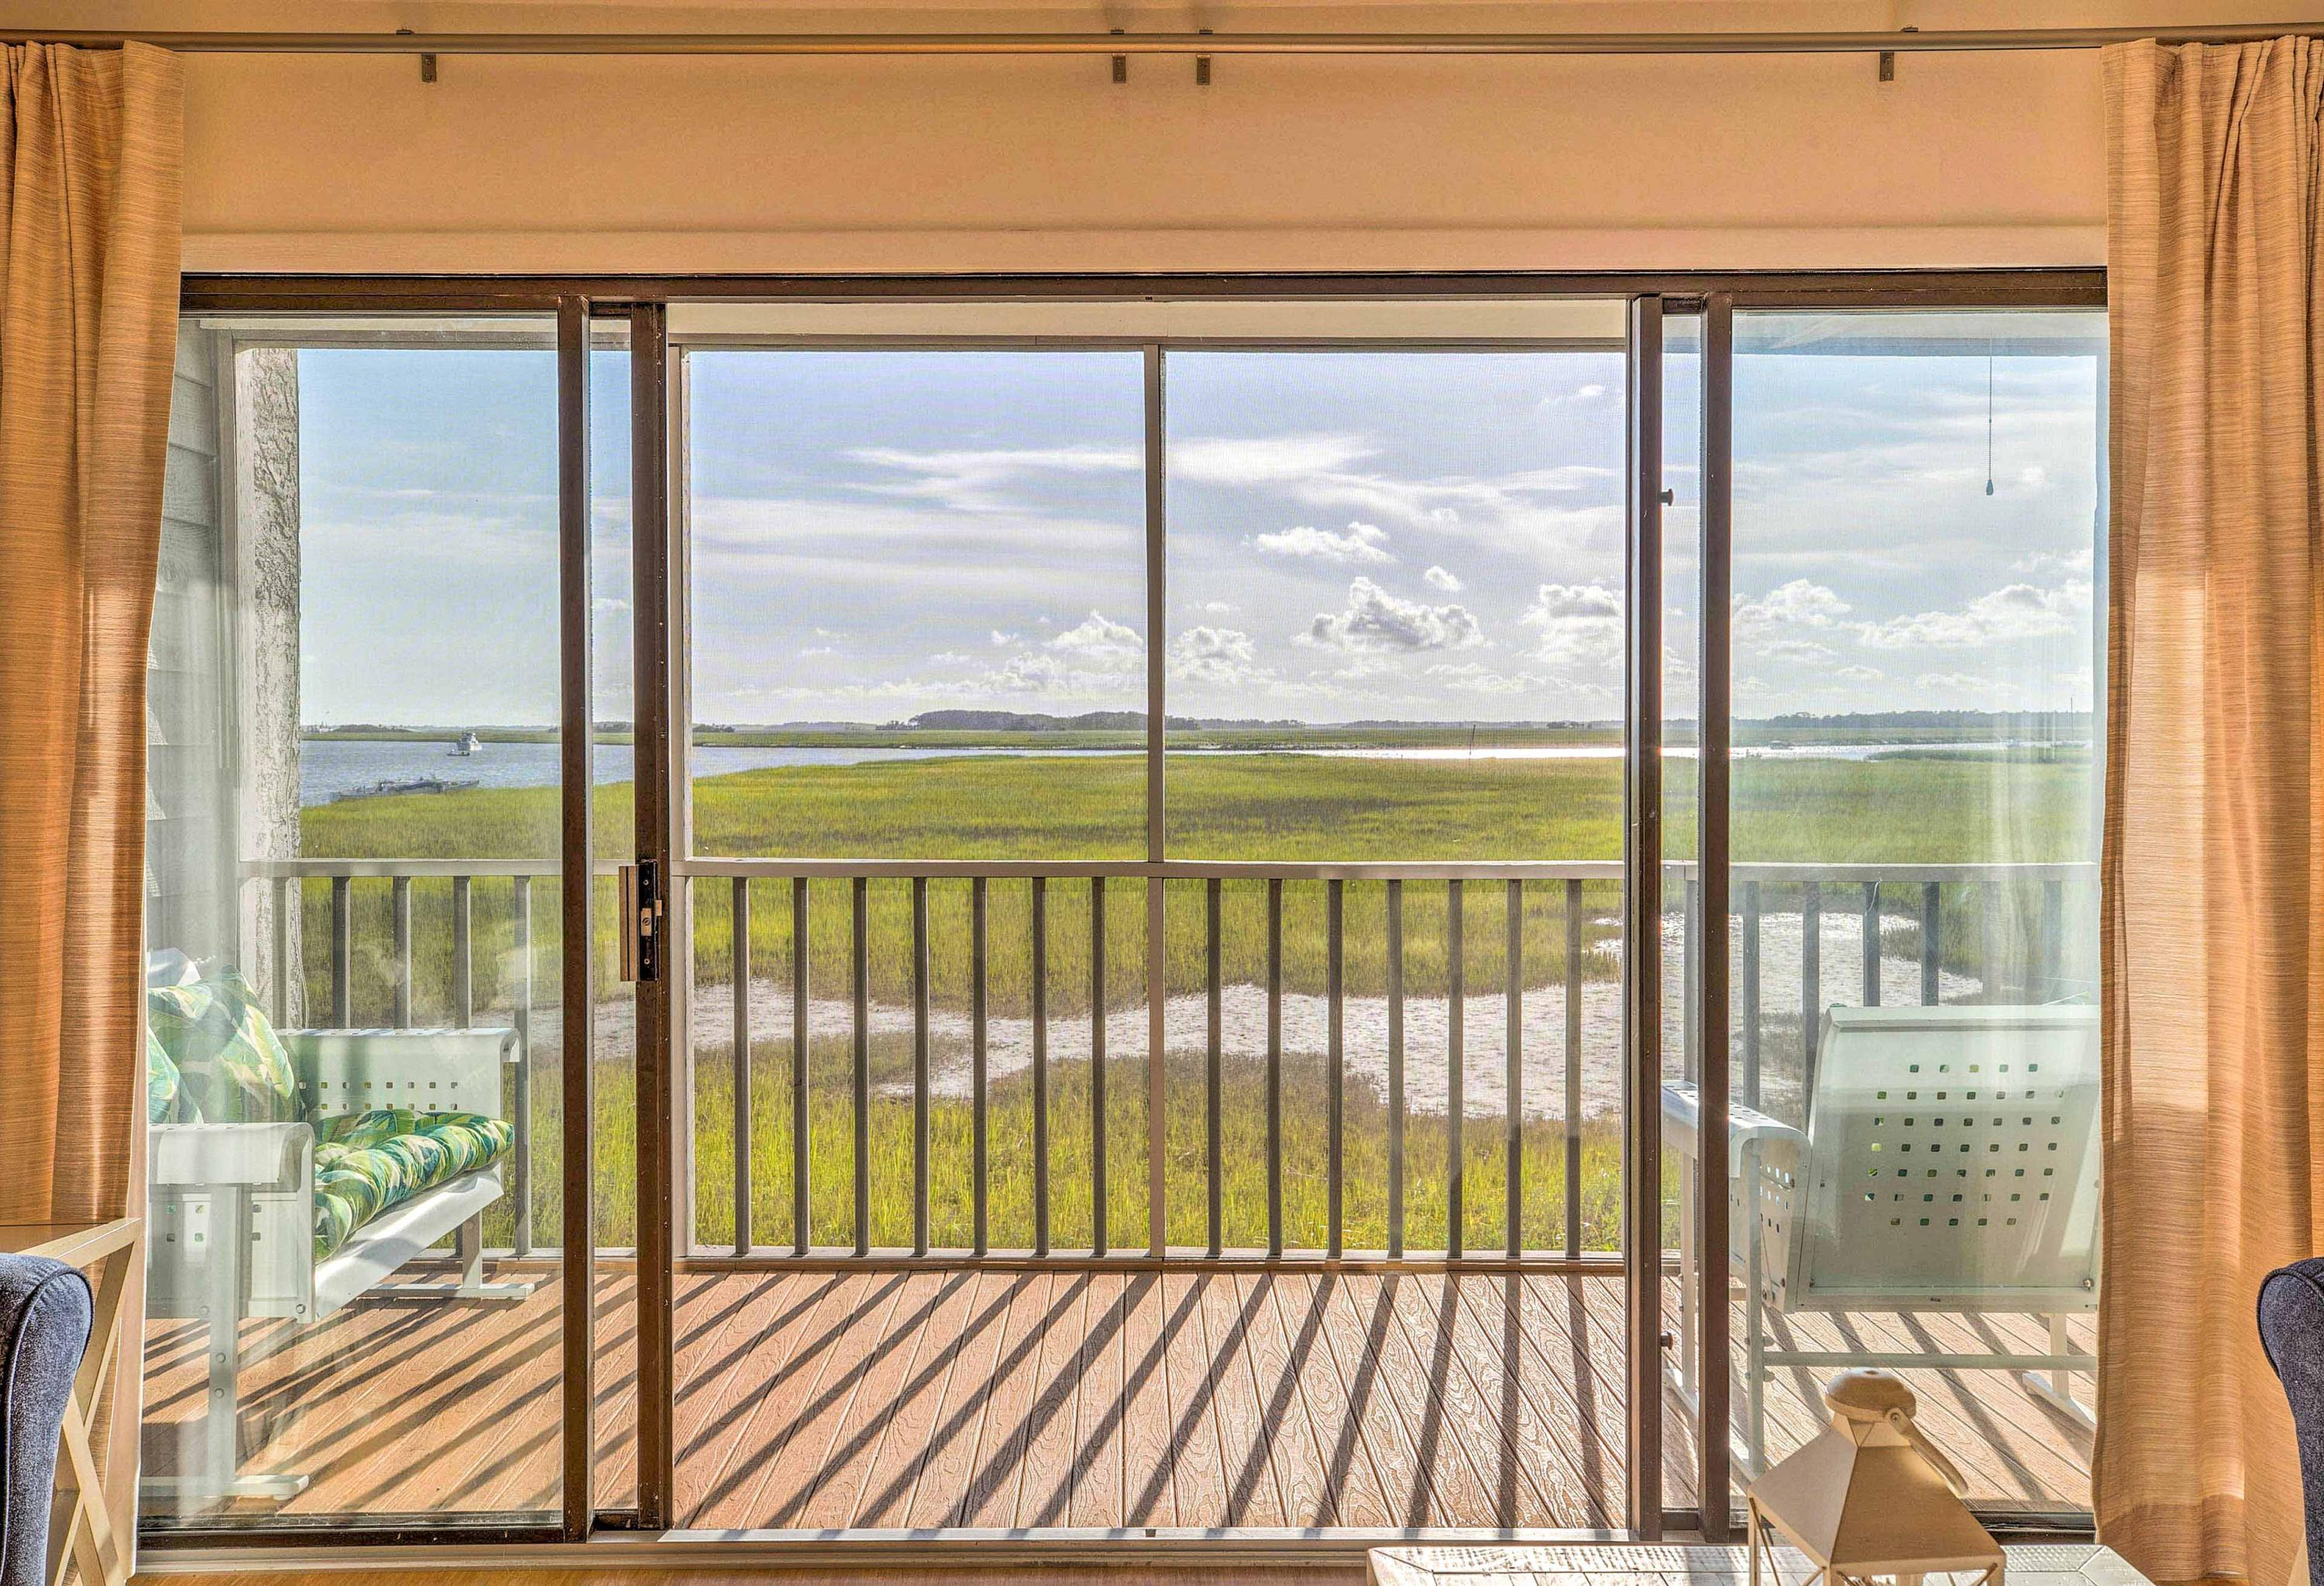 Mariners Cay Homes For Sale - 93 Mariners Cay, Folly Beach, SC - 24